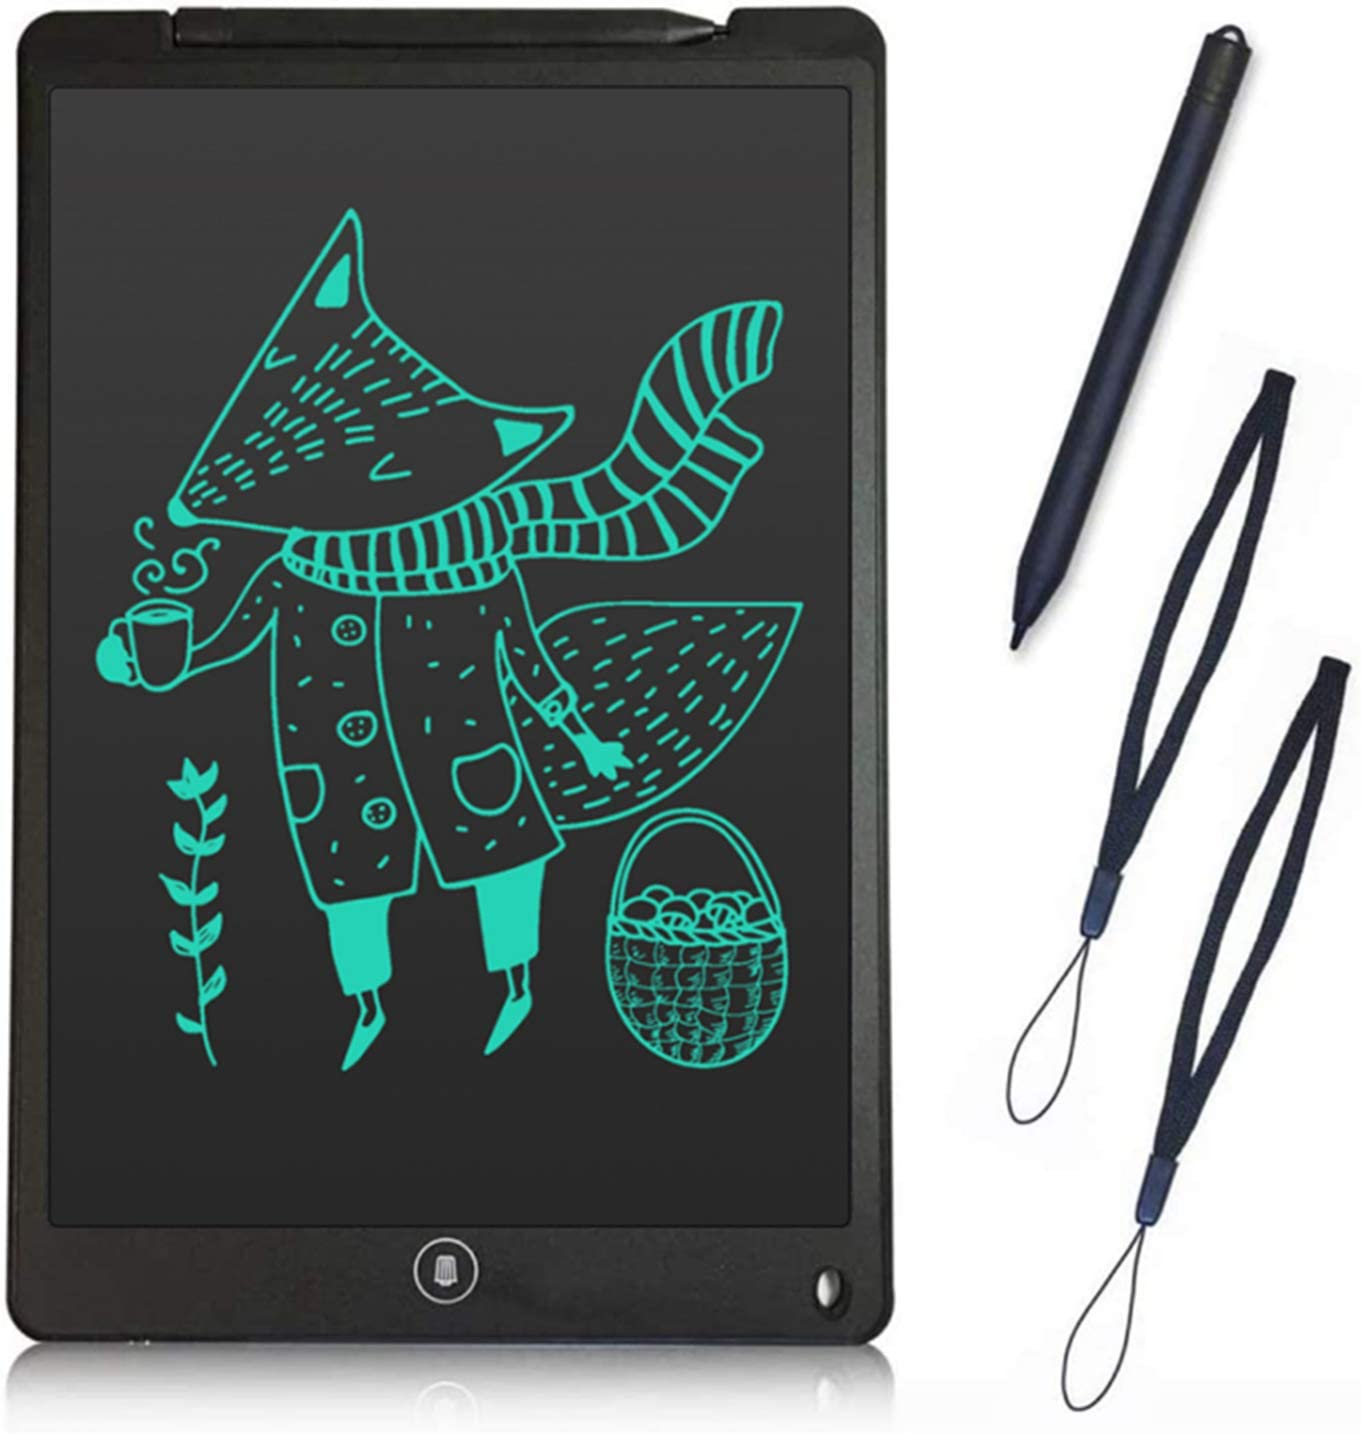 LCD/Writing/Tablet,/12/Inch/Digital/eWriter/Electronic/Graphics/Tablets/Erasable/Portable/Doodle/Board/Drawing/Tablets/Pads/Memo/Notepad/Gift/for/Kids/&